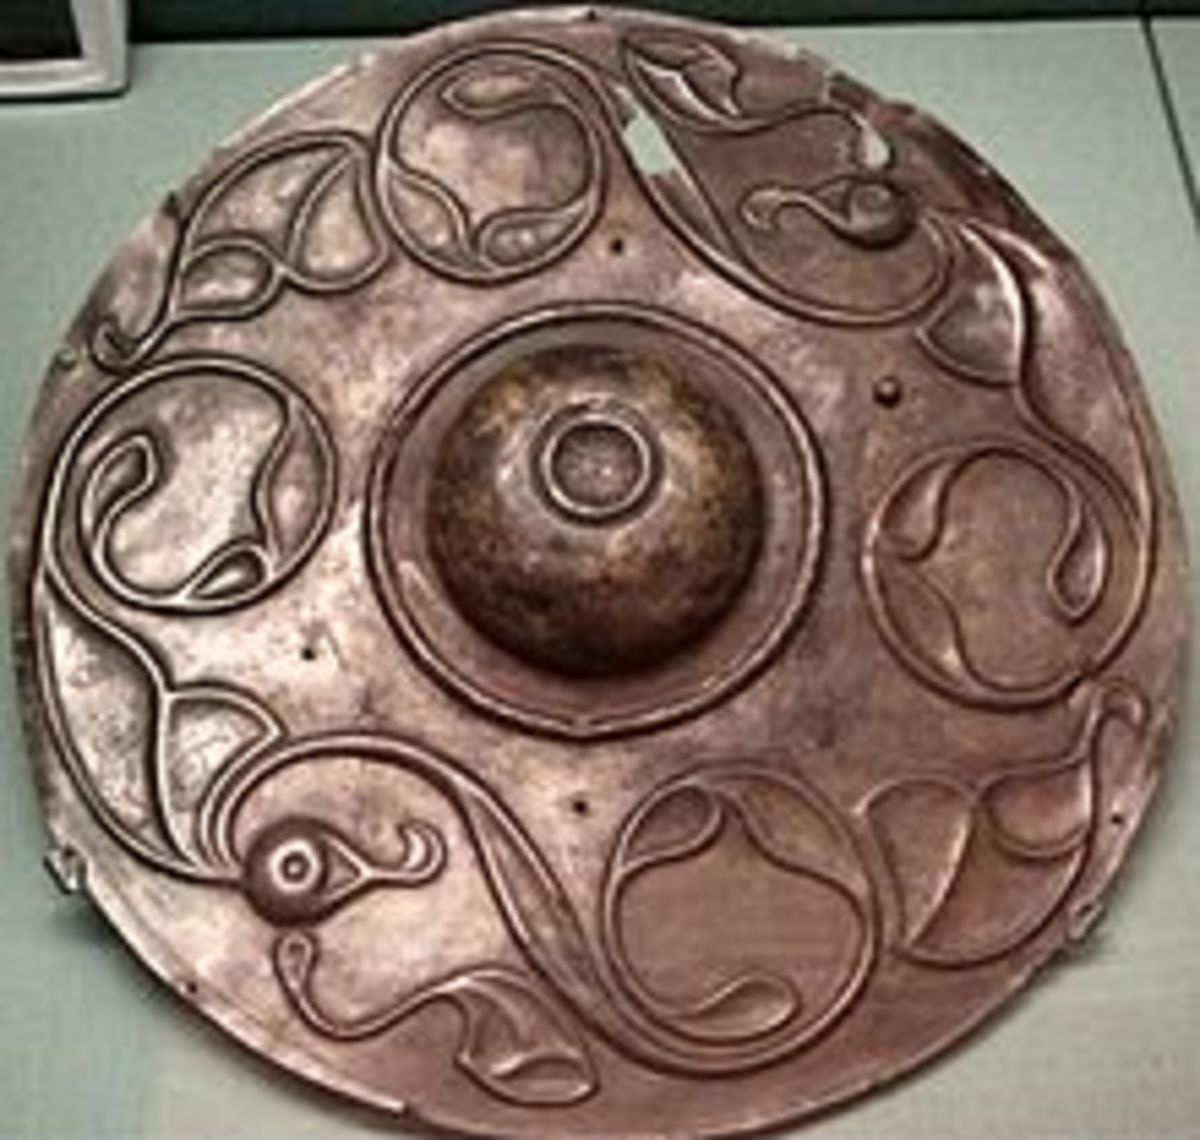 Round shields used by the Celtic warriors unearthed in Spain.